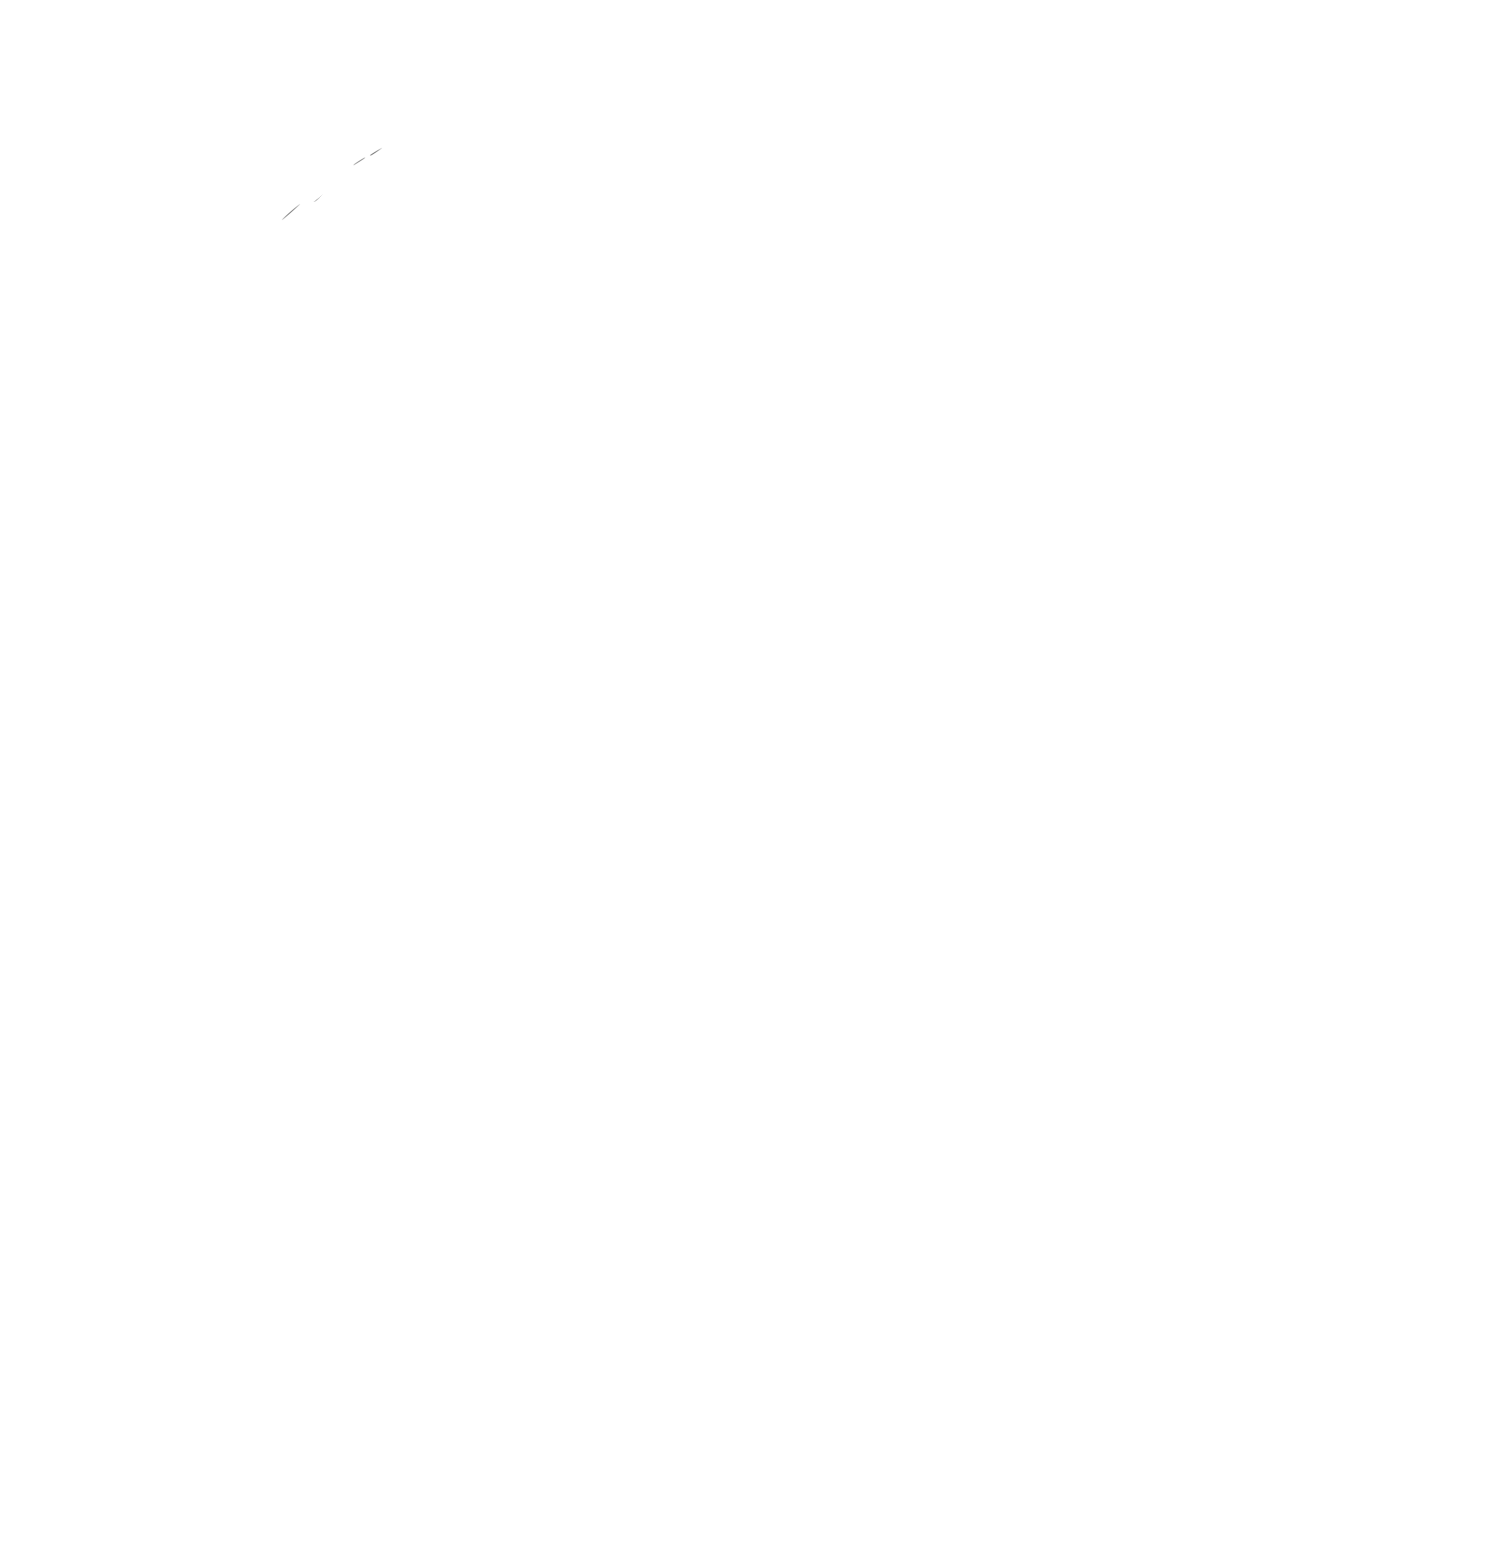 JK DeGraff Photography serving Southern MD, Northern VA, Washington DC